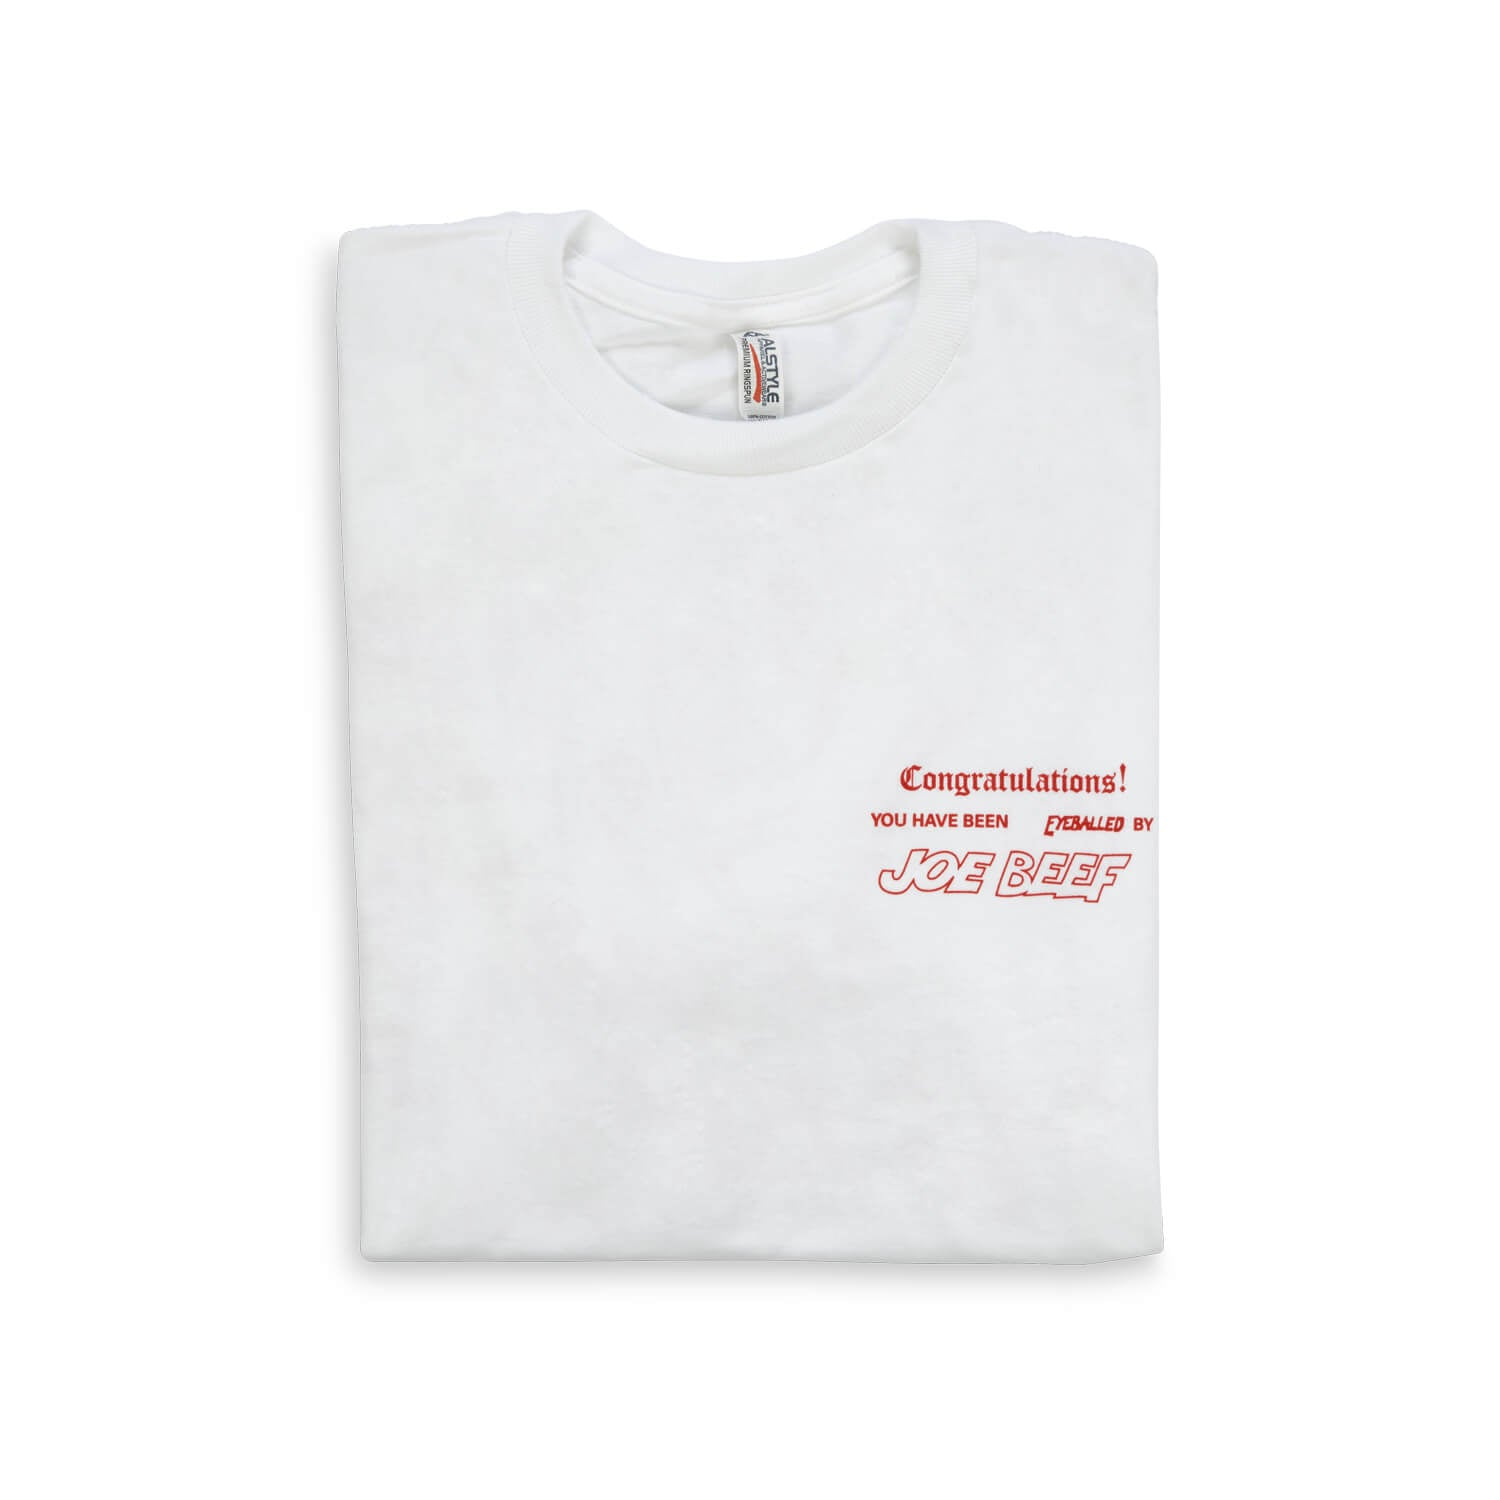 2eebf5849a81 Joe Beef Congratulations T-Shirt (White/Red)